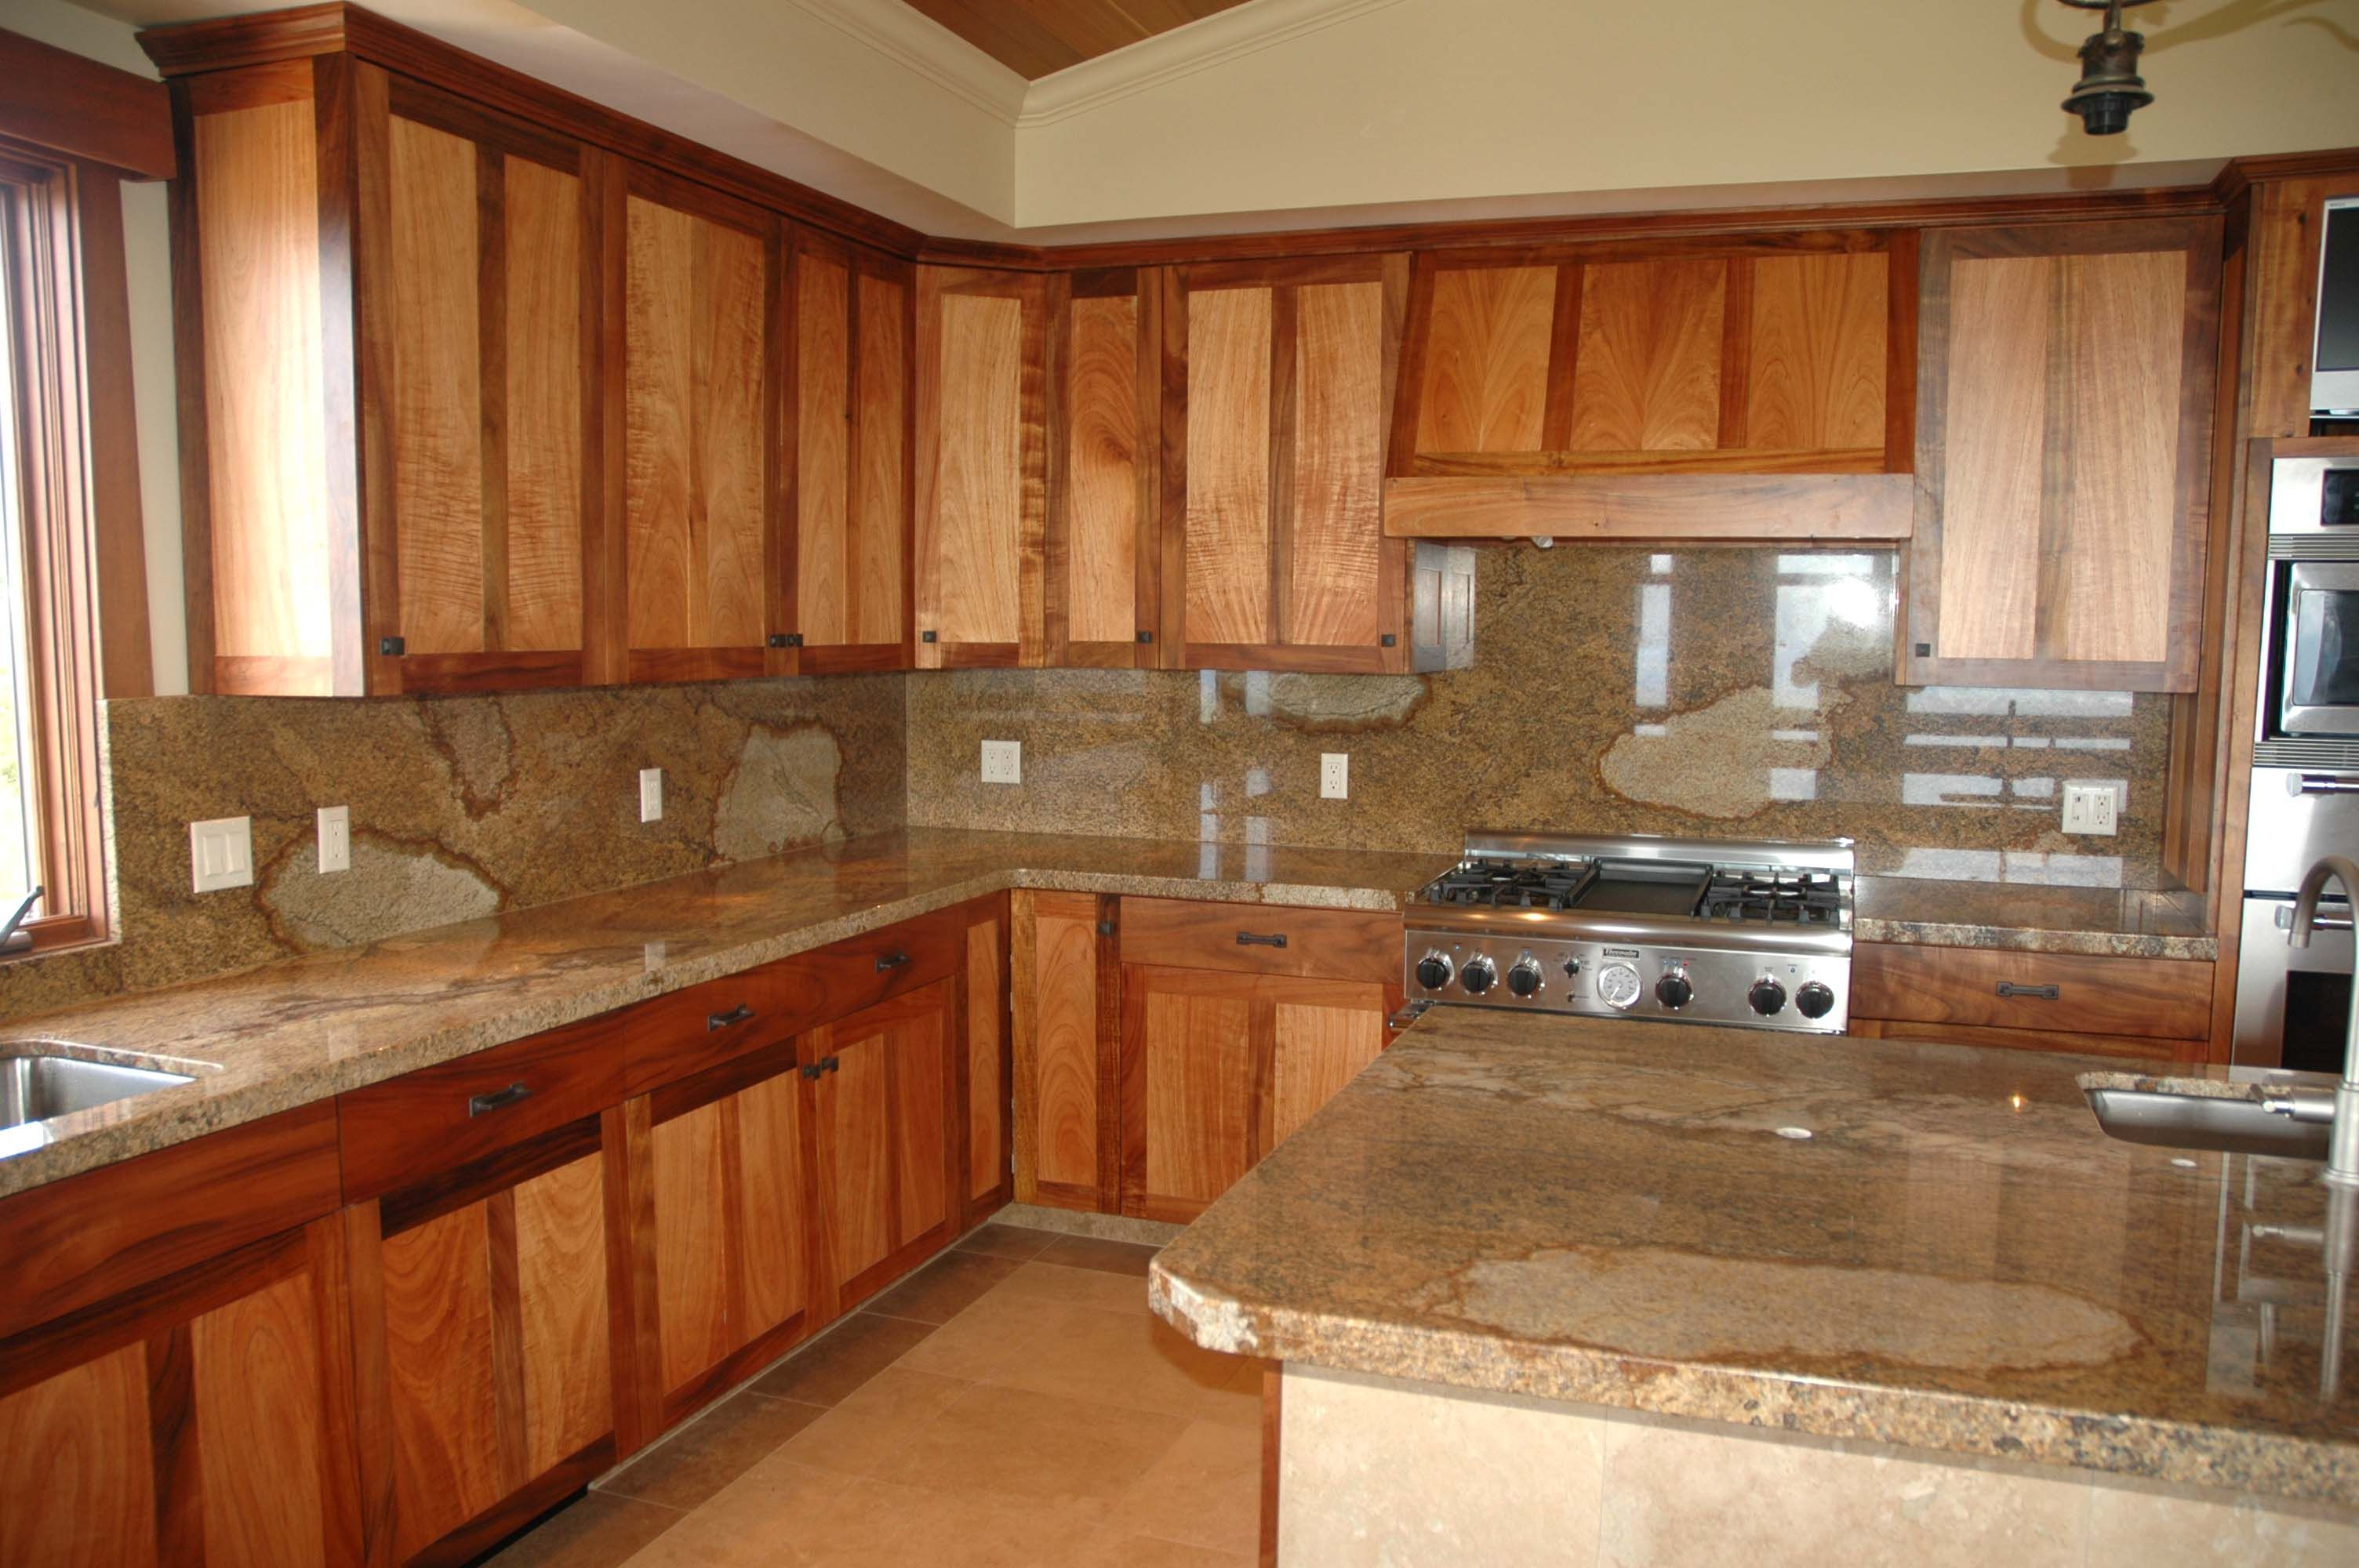 Koa Wood Kitchen Cabinets Custom Cabinets | Custom Koa Kitchen In Kula, Maui, Hawaii